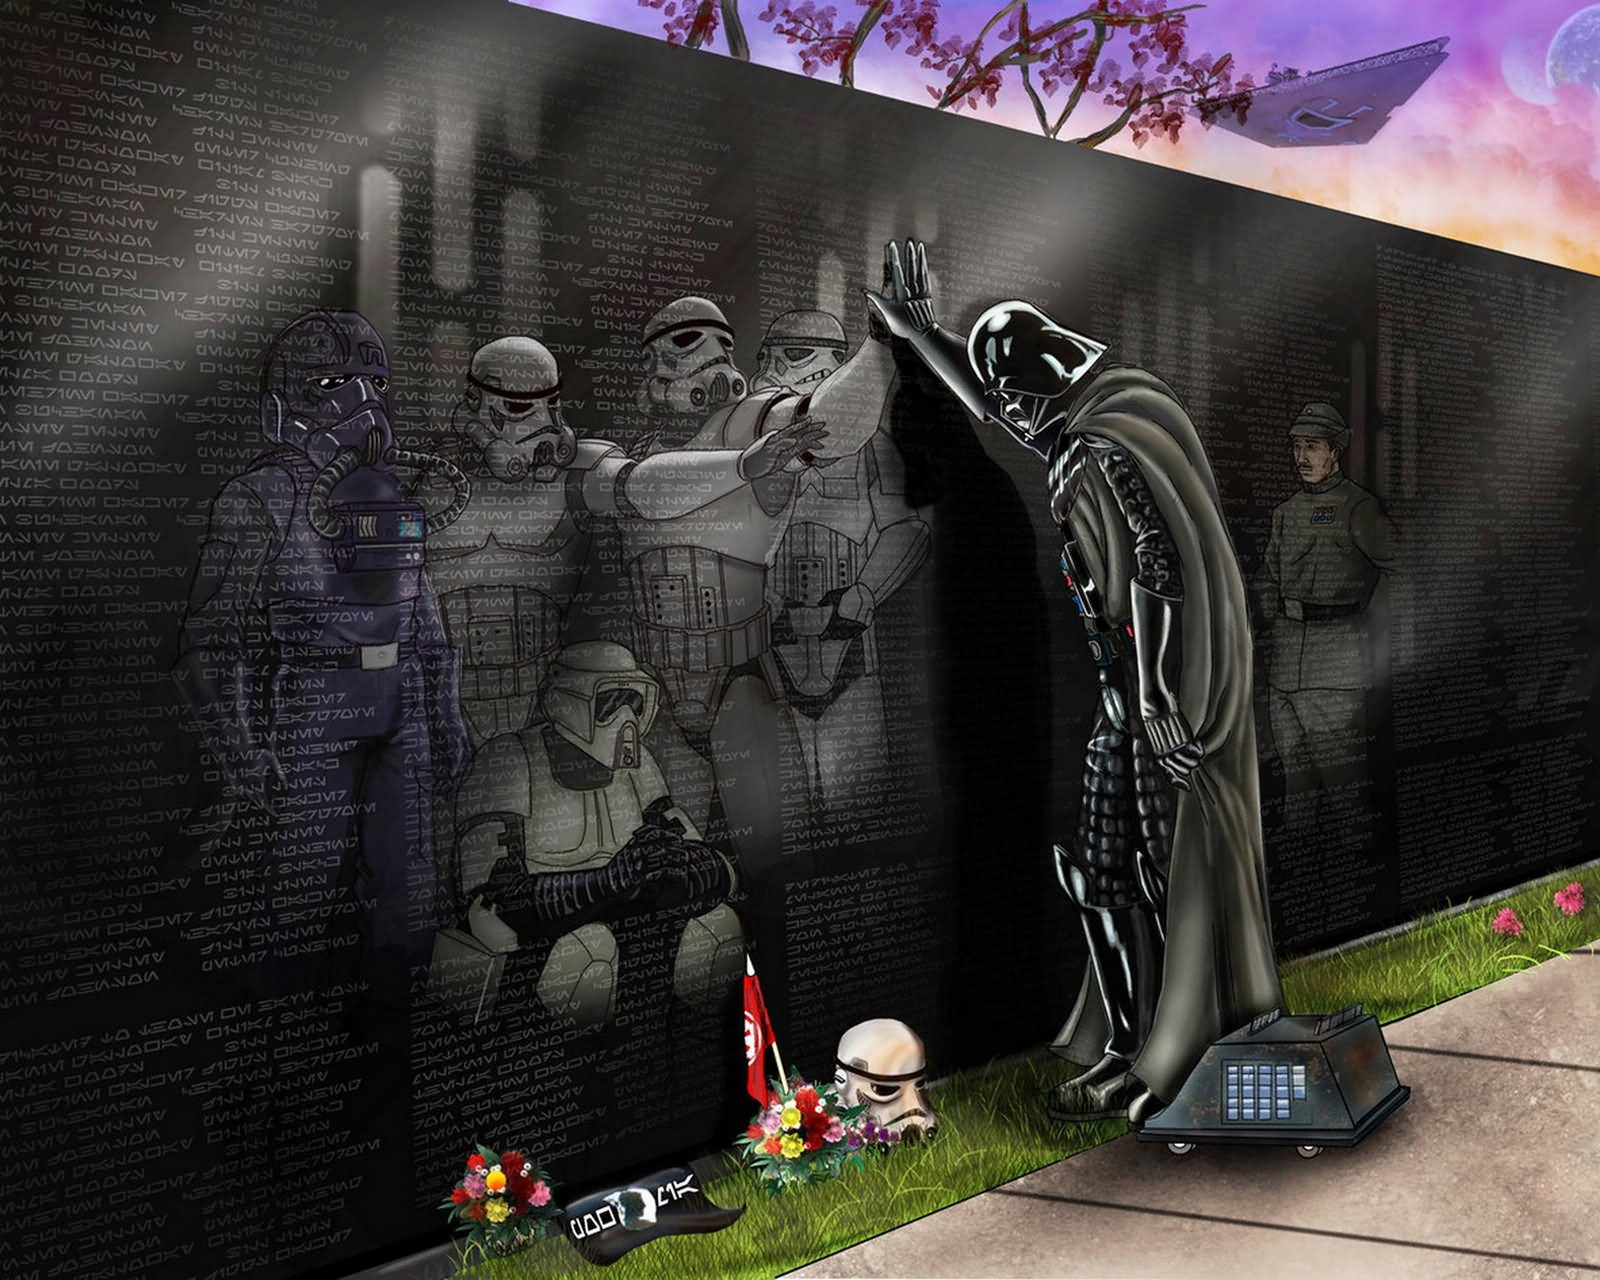 Darth Vader Funny Memorial Wall Star Wars Image